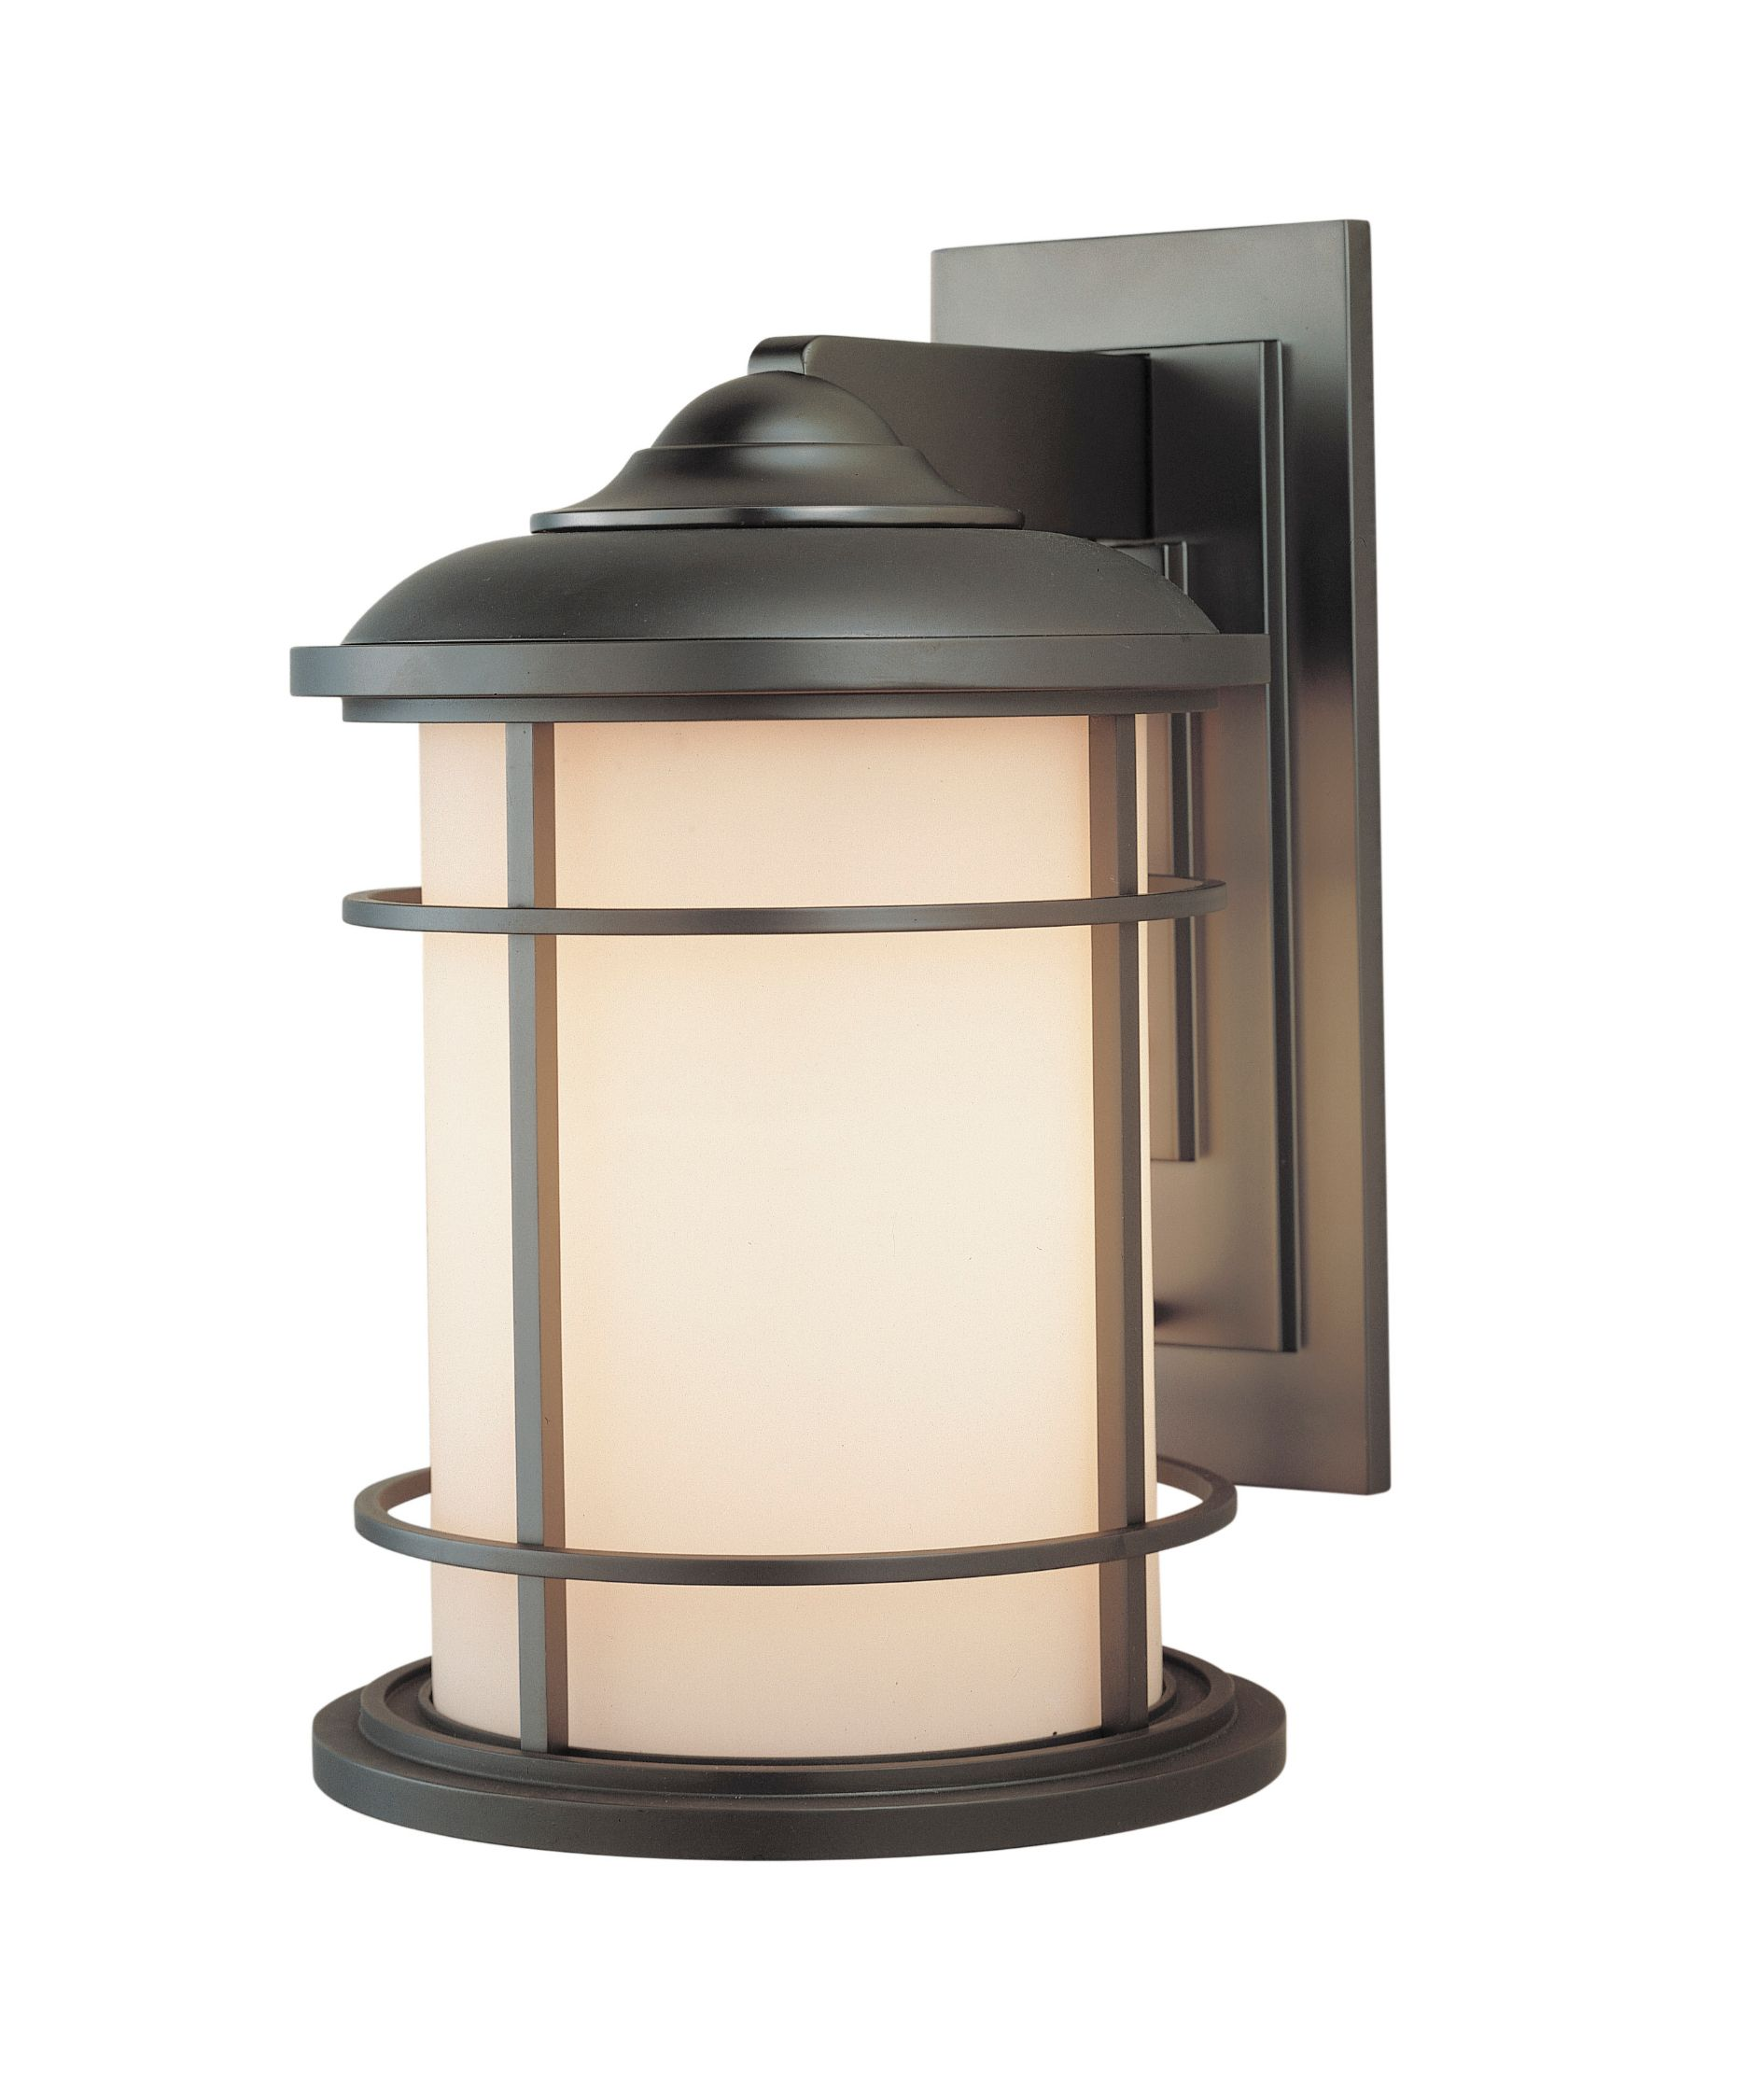 Feiss Lighthouse 15 Inch Tall 1 Light Outdoor Wall Light Capitol Lighting Bronze Outdoor Lighting Wall Mount Lantern Outdoor Sconces